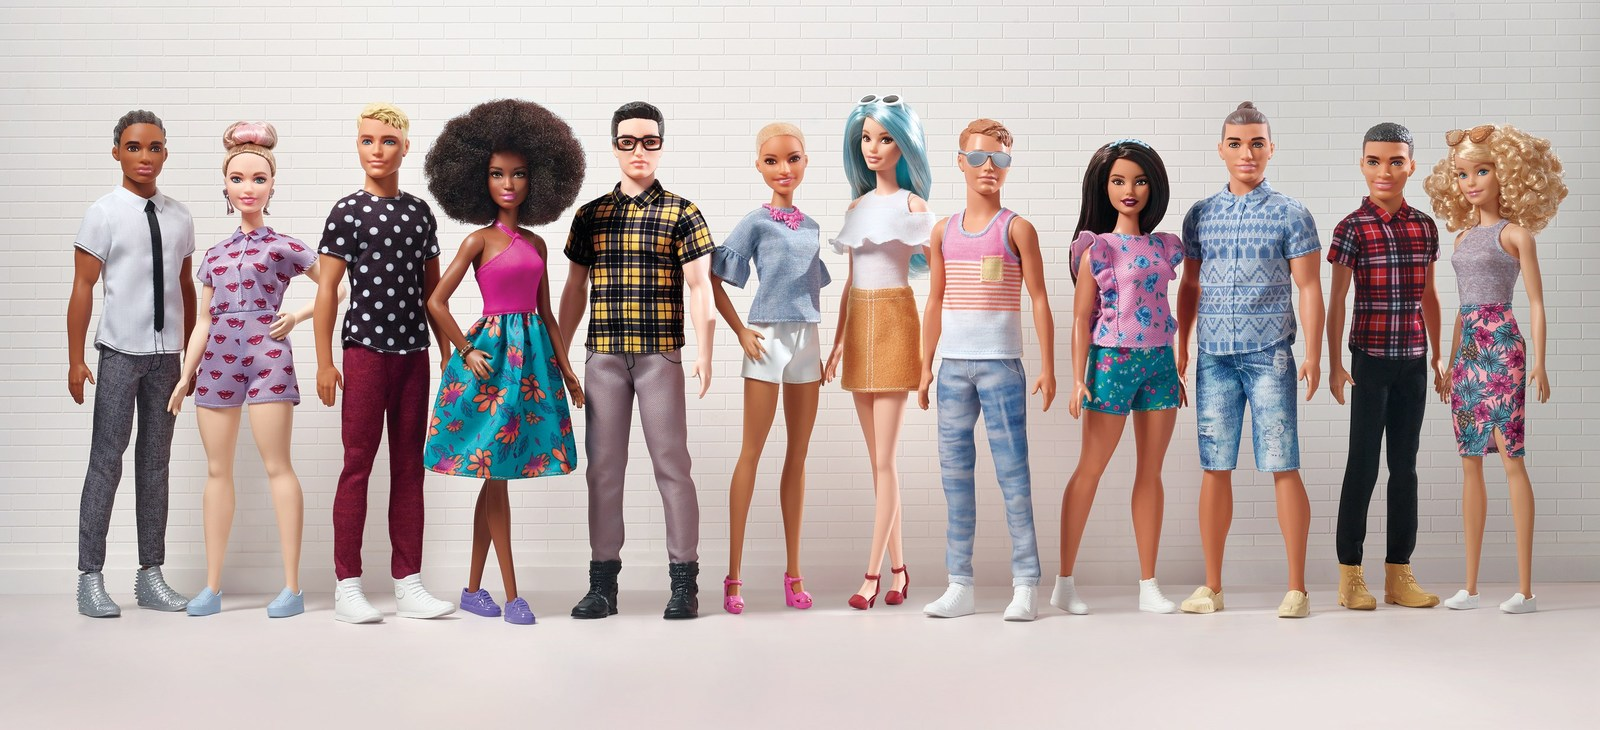 New Barbie Doll Lineup Lets Ken Settle Into His Dad-Bod, Live Out His Man-Bun Fantasy